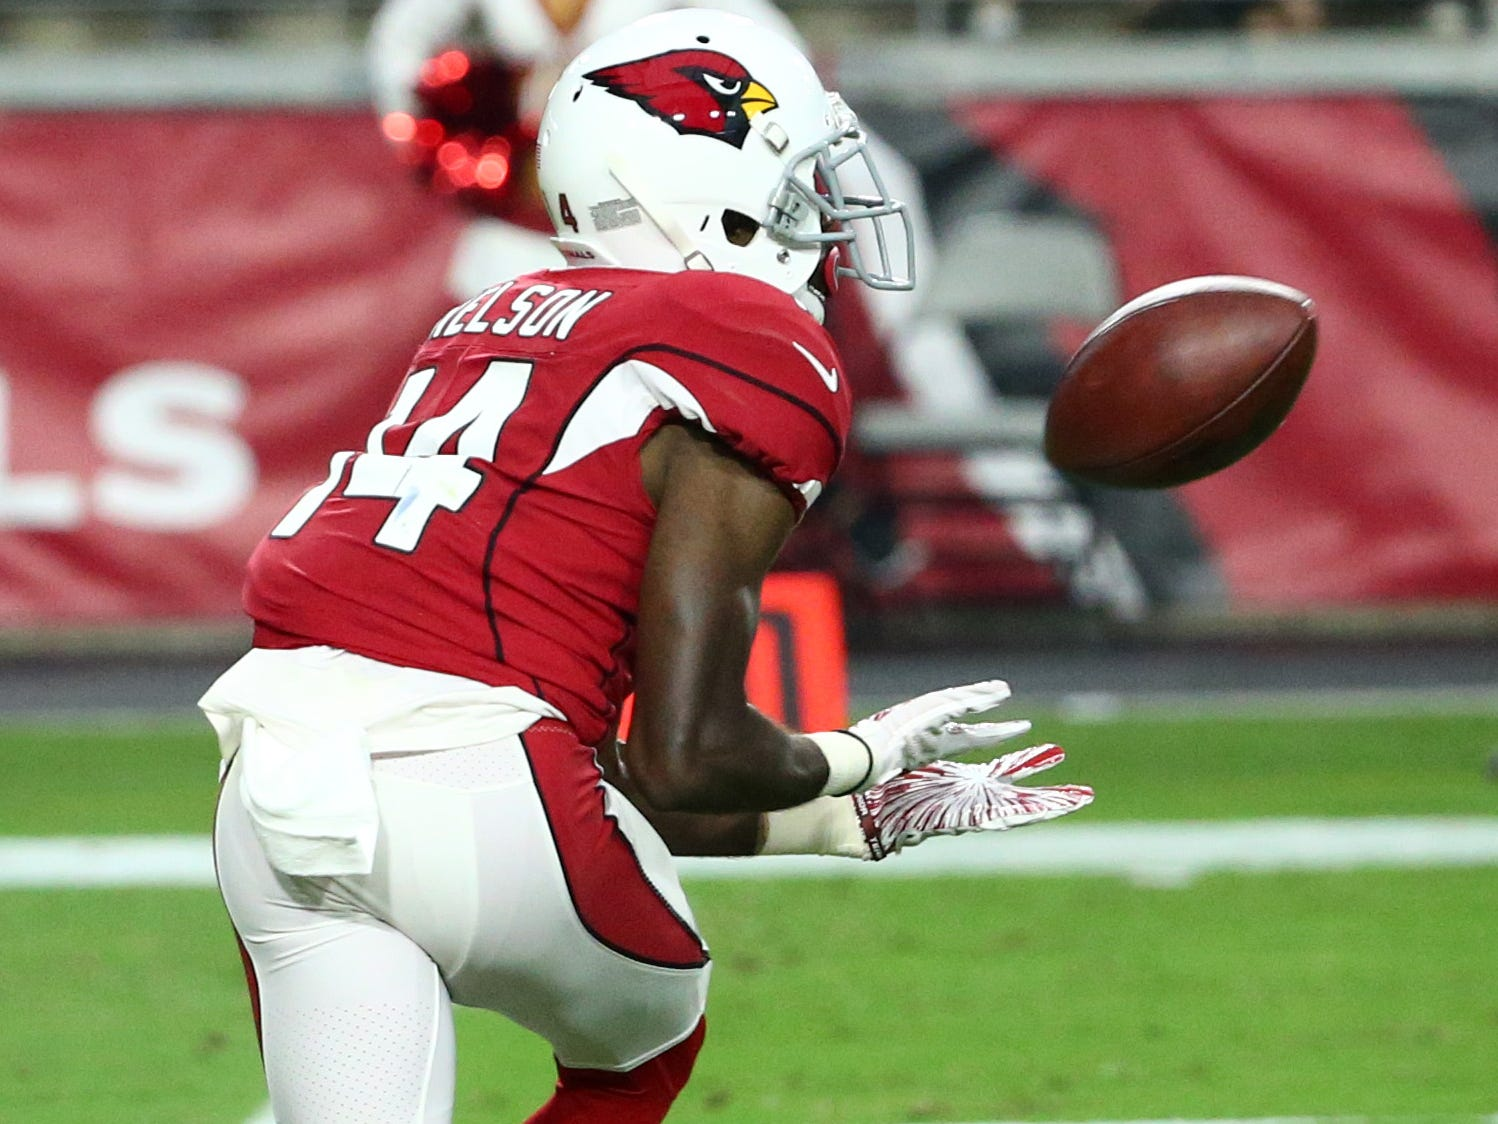 Arizona Cardinals wide receiver J.J. Nelson misses a wide-open pass against the Seattle Seahawks in the first half at State Farm Stadium in Glendale,  Ariz.